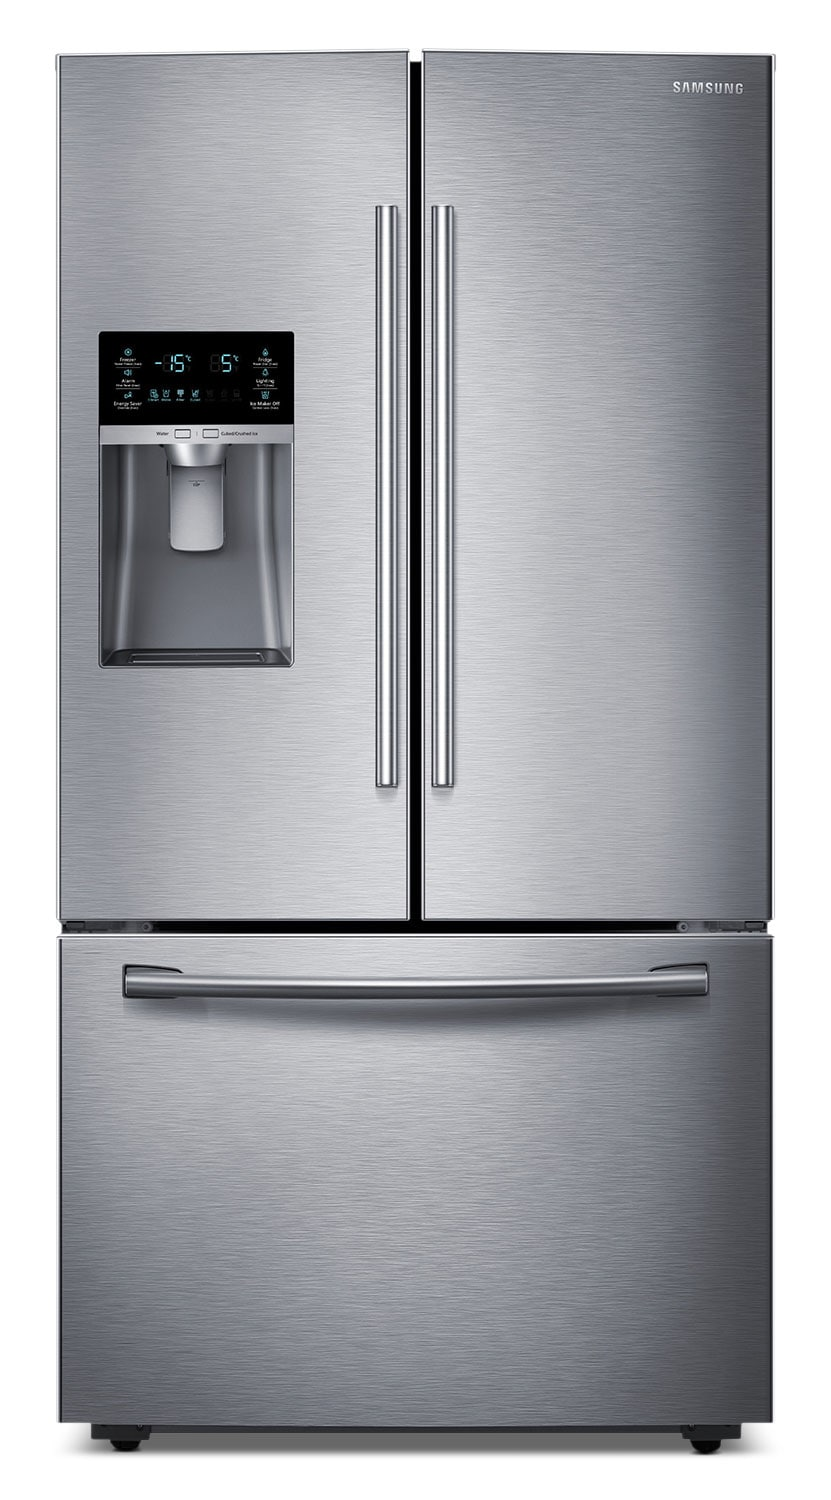 Samsung Stainless Steel French Door Refrigerator (28.5 Cu. Ft.) - RF28HFEDBSR